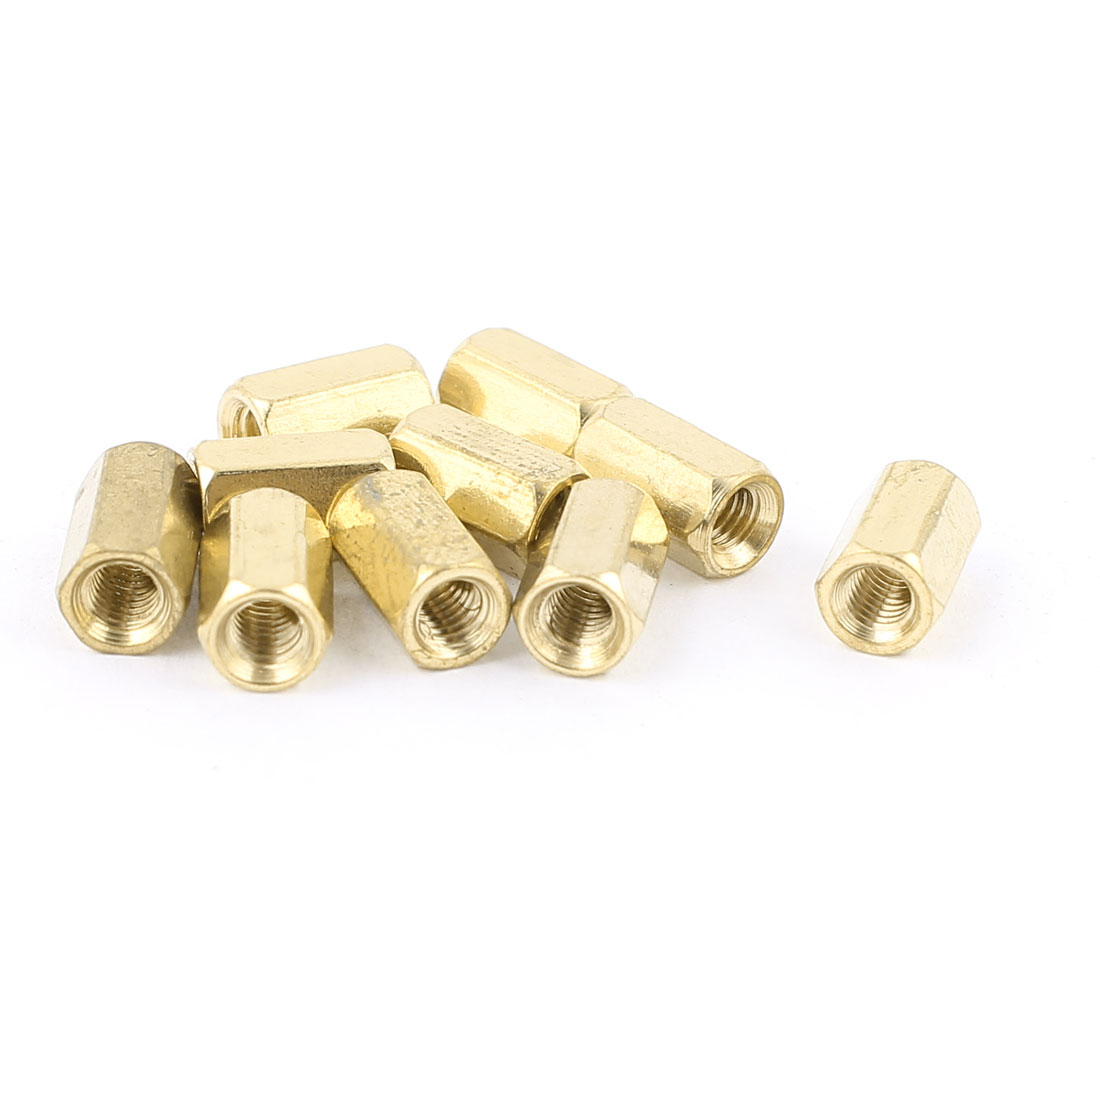 M3 x 8mm Female/Female Thread Brass Hex Standoff PCB Pillar Spacer 10pcs